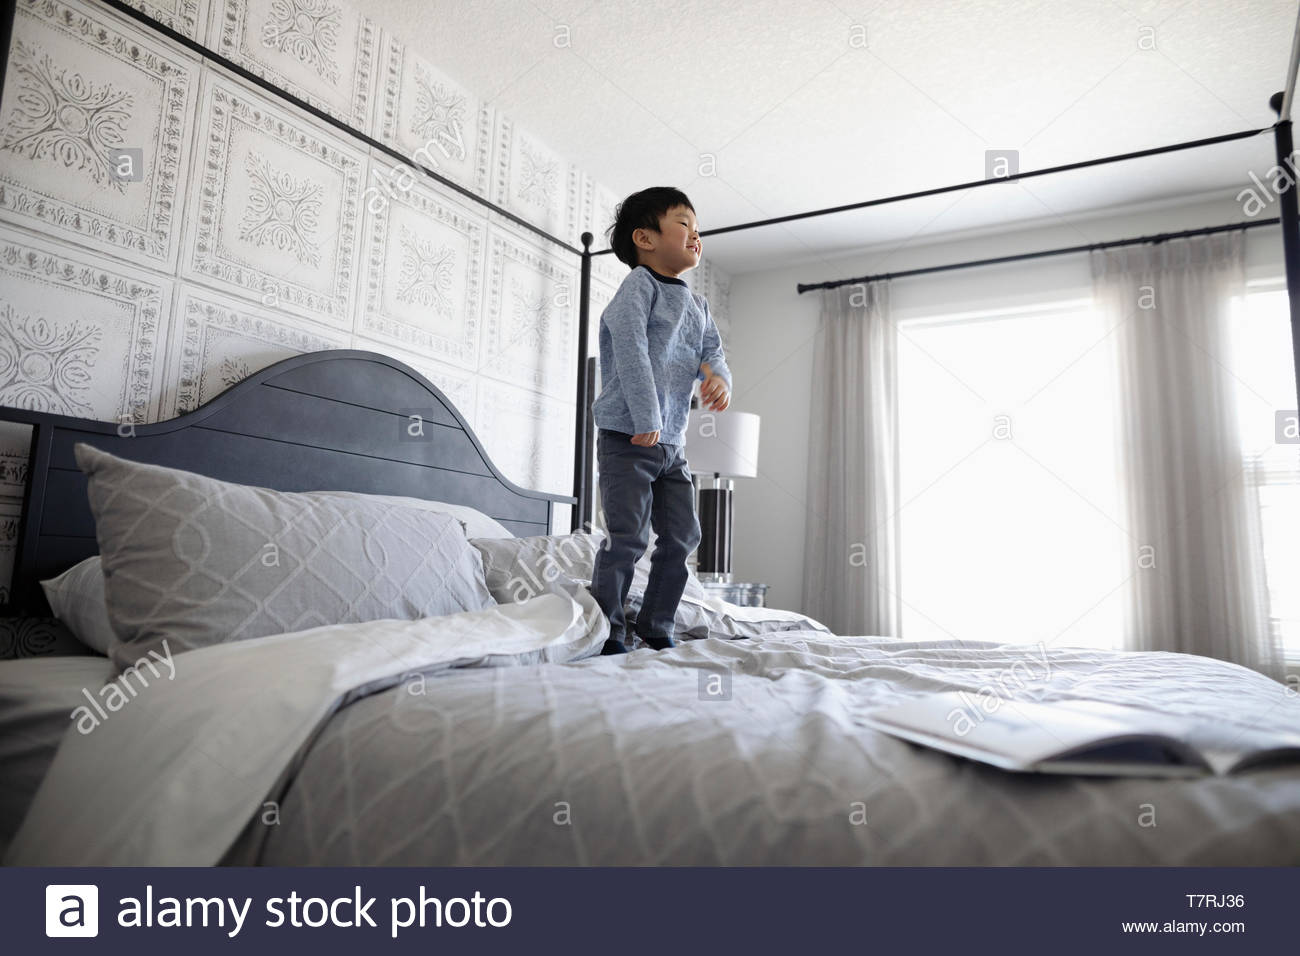 Playful boy jumping on bed Photo Stock